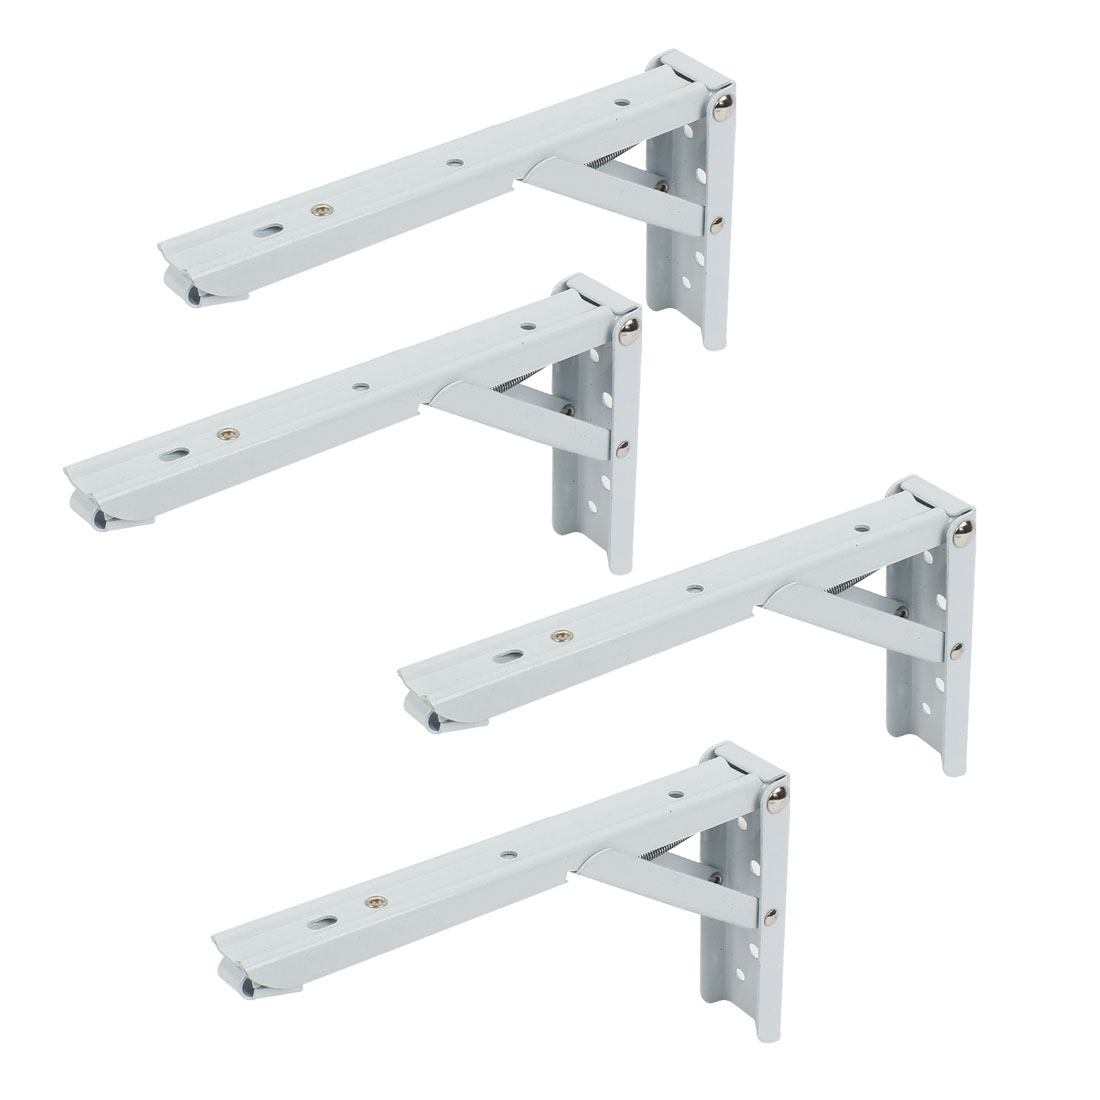 "4 Pcs Right Angle Spring Loaded Folding Support Shelf Bracket 8"" Length"